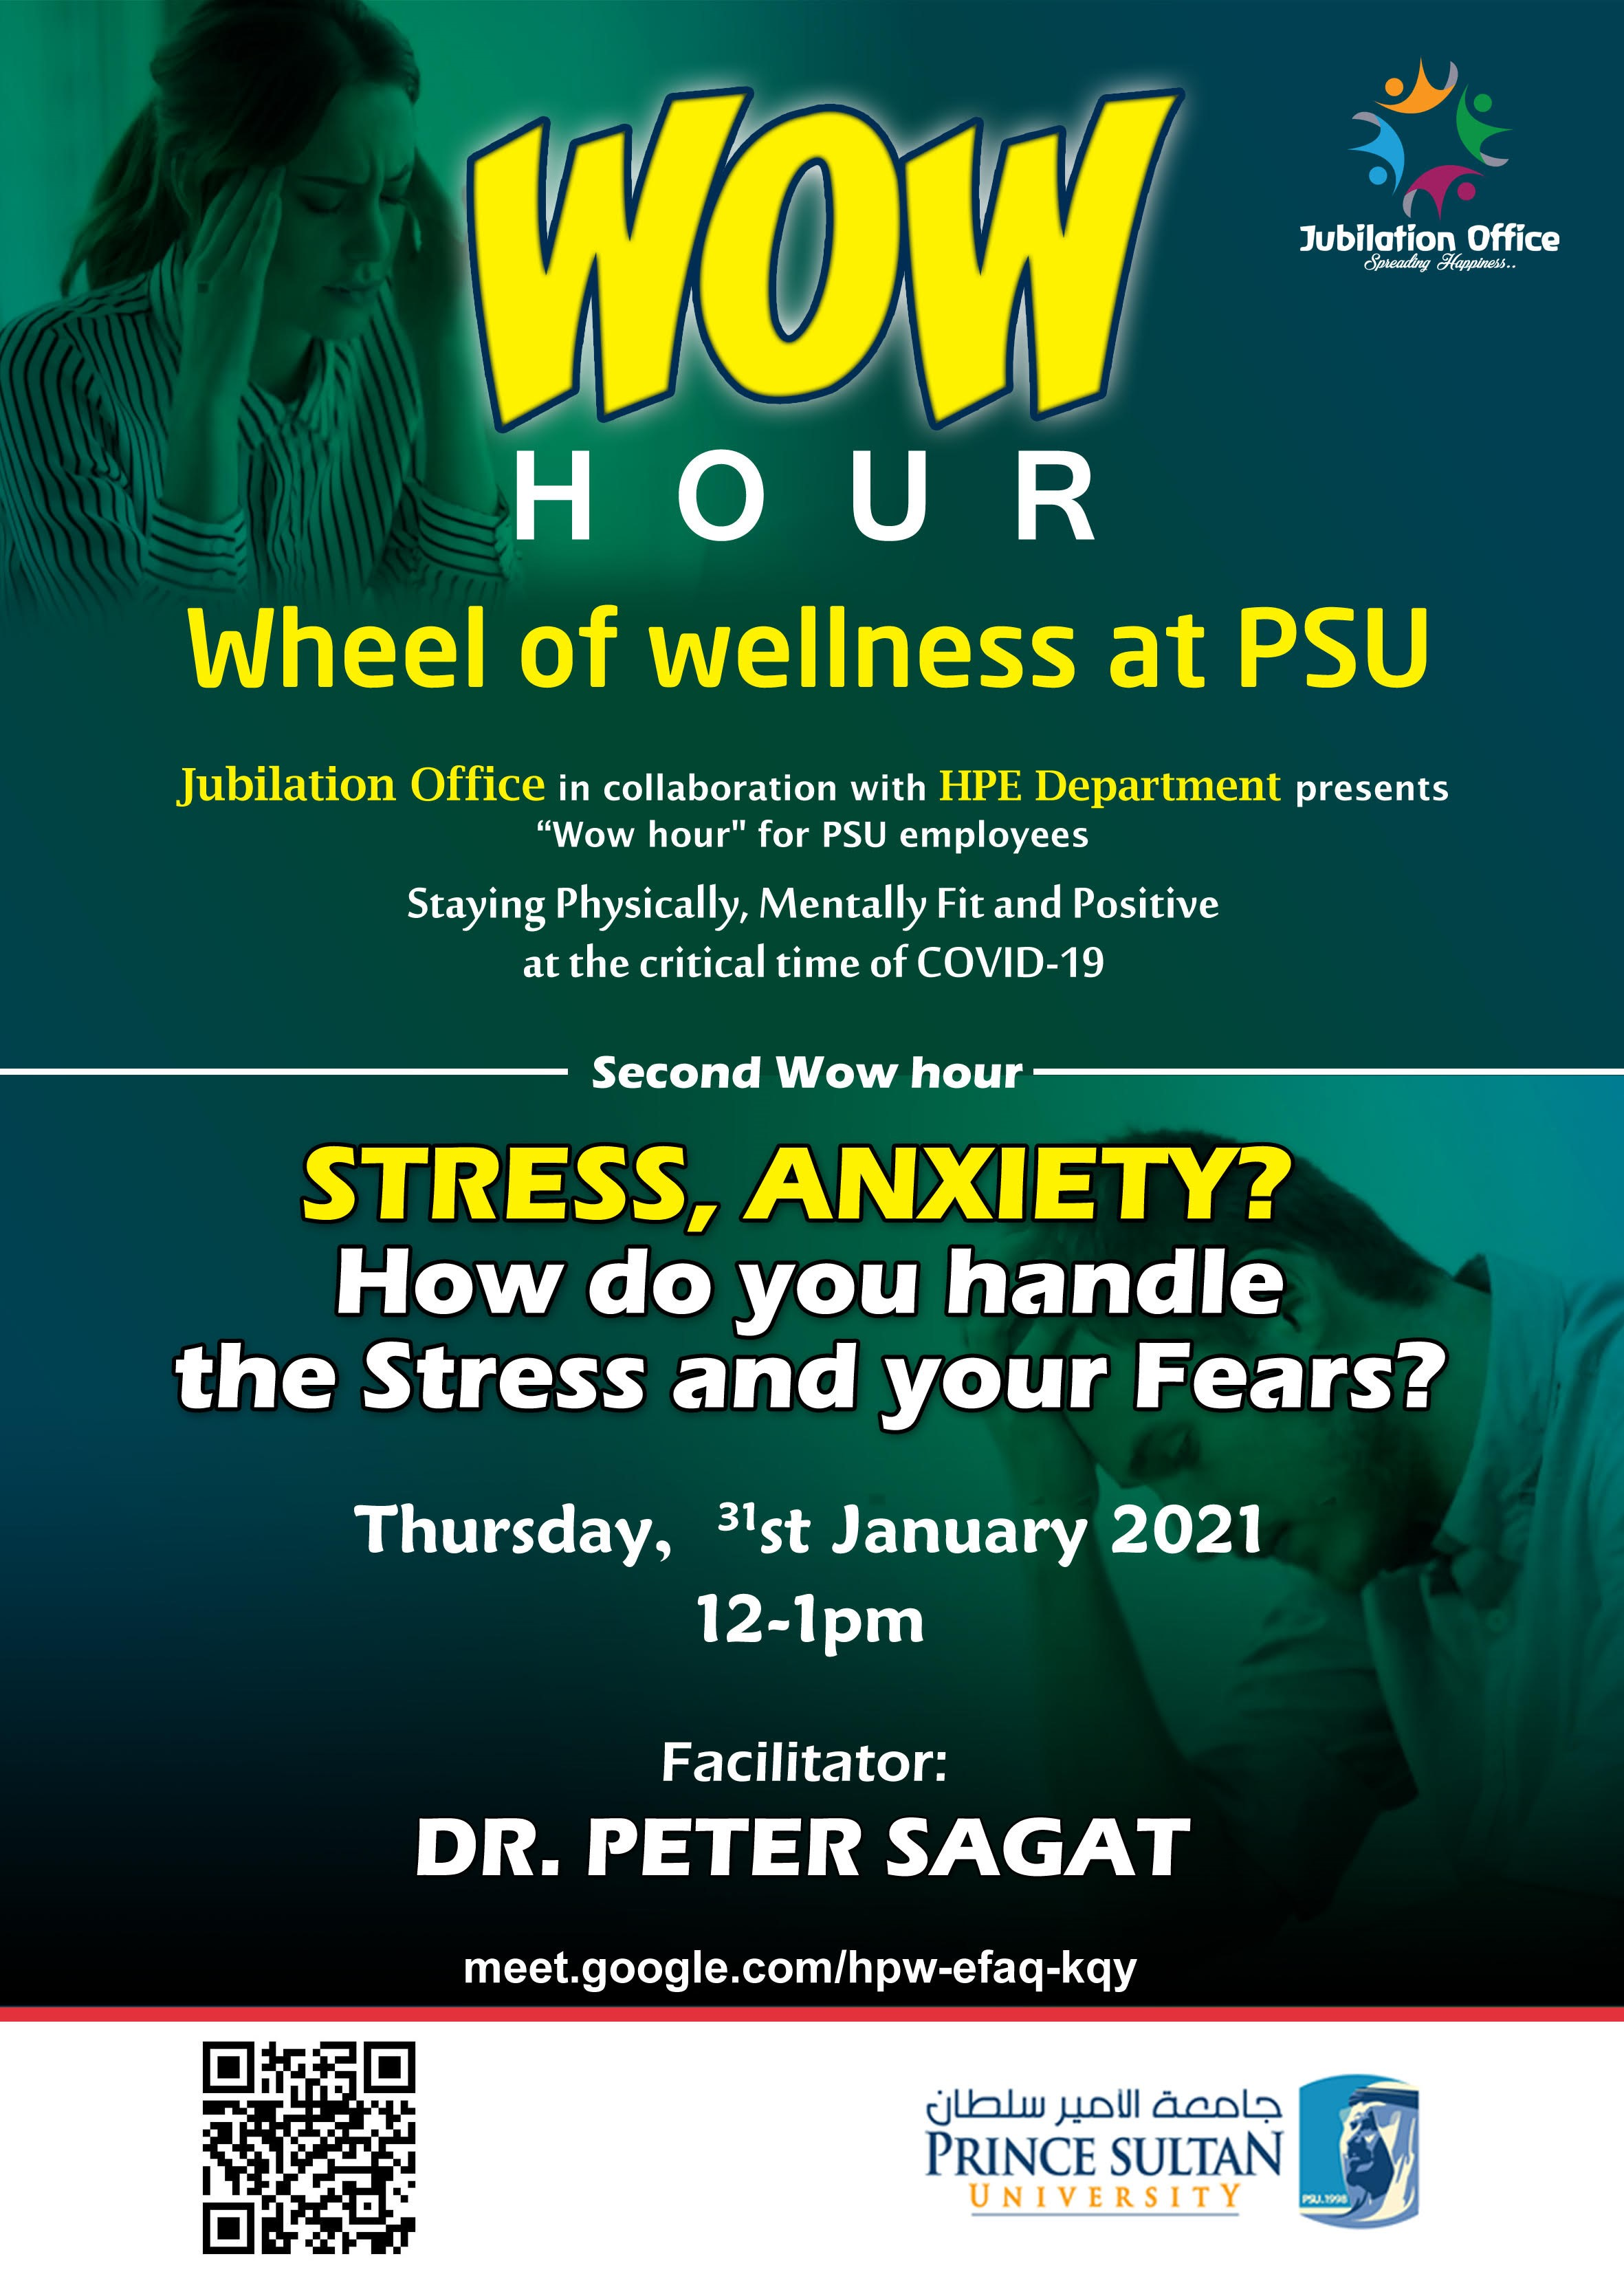 Stress, Anxiety? How do you handle the Stress and your fears?<